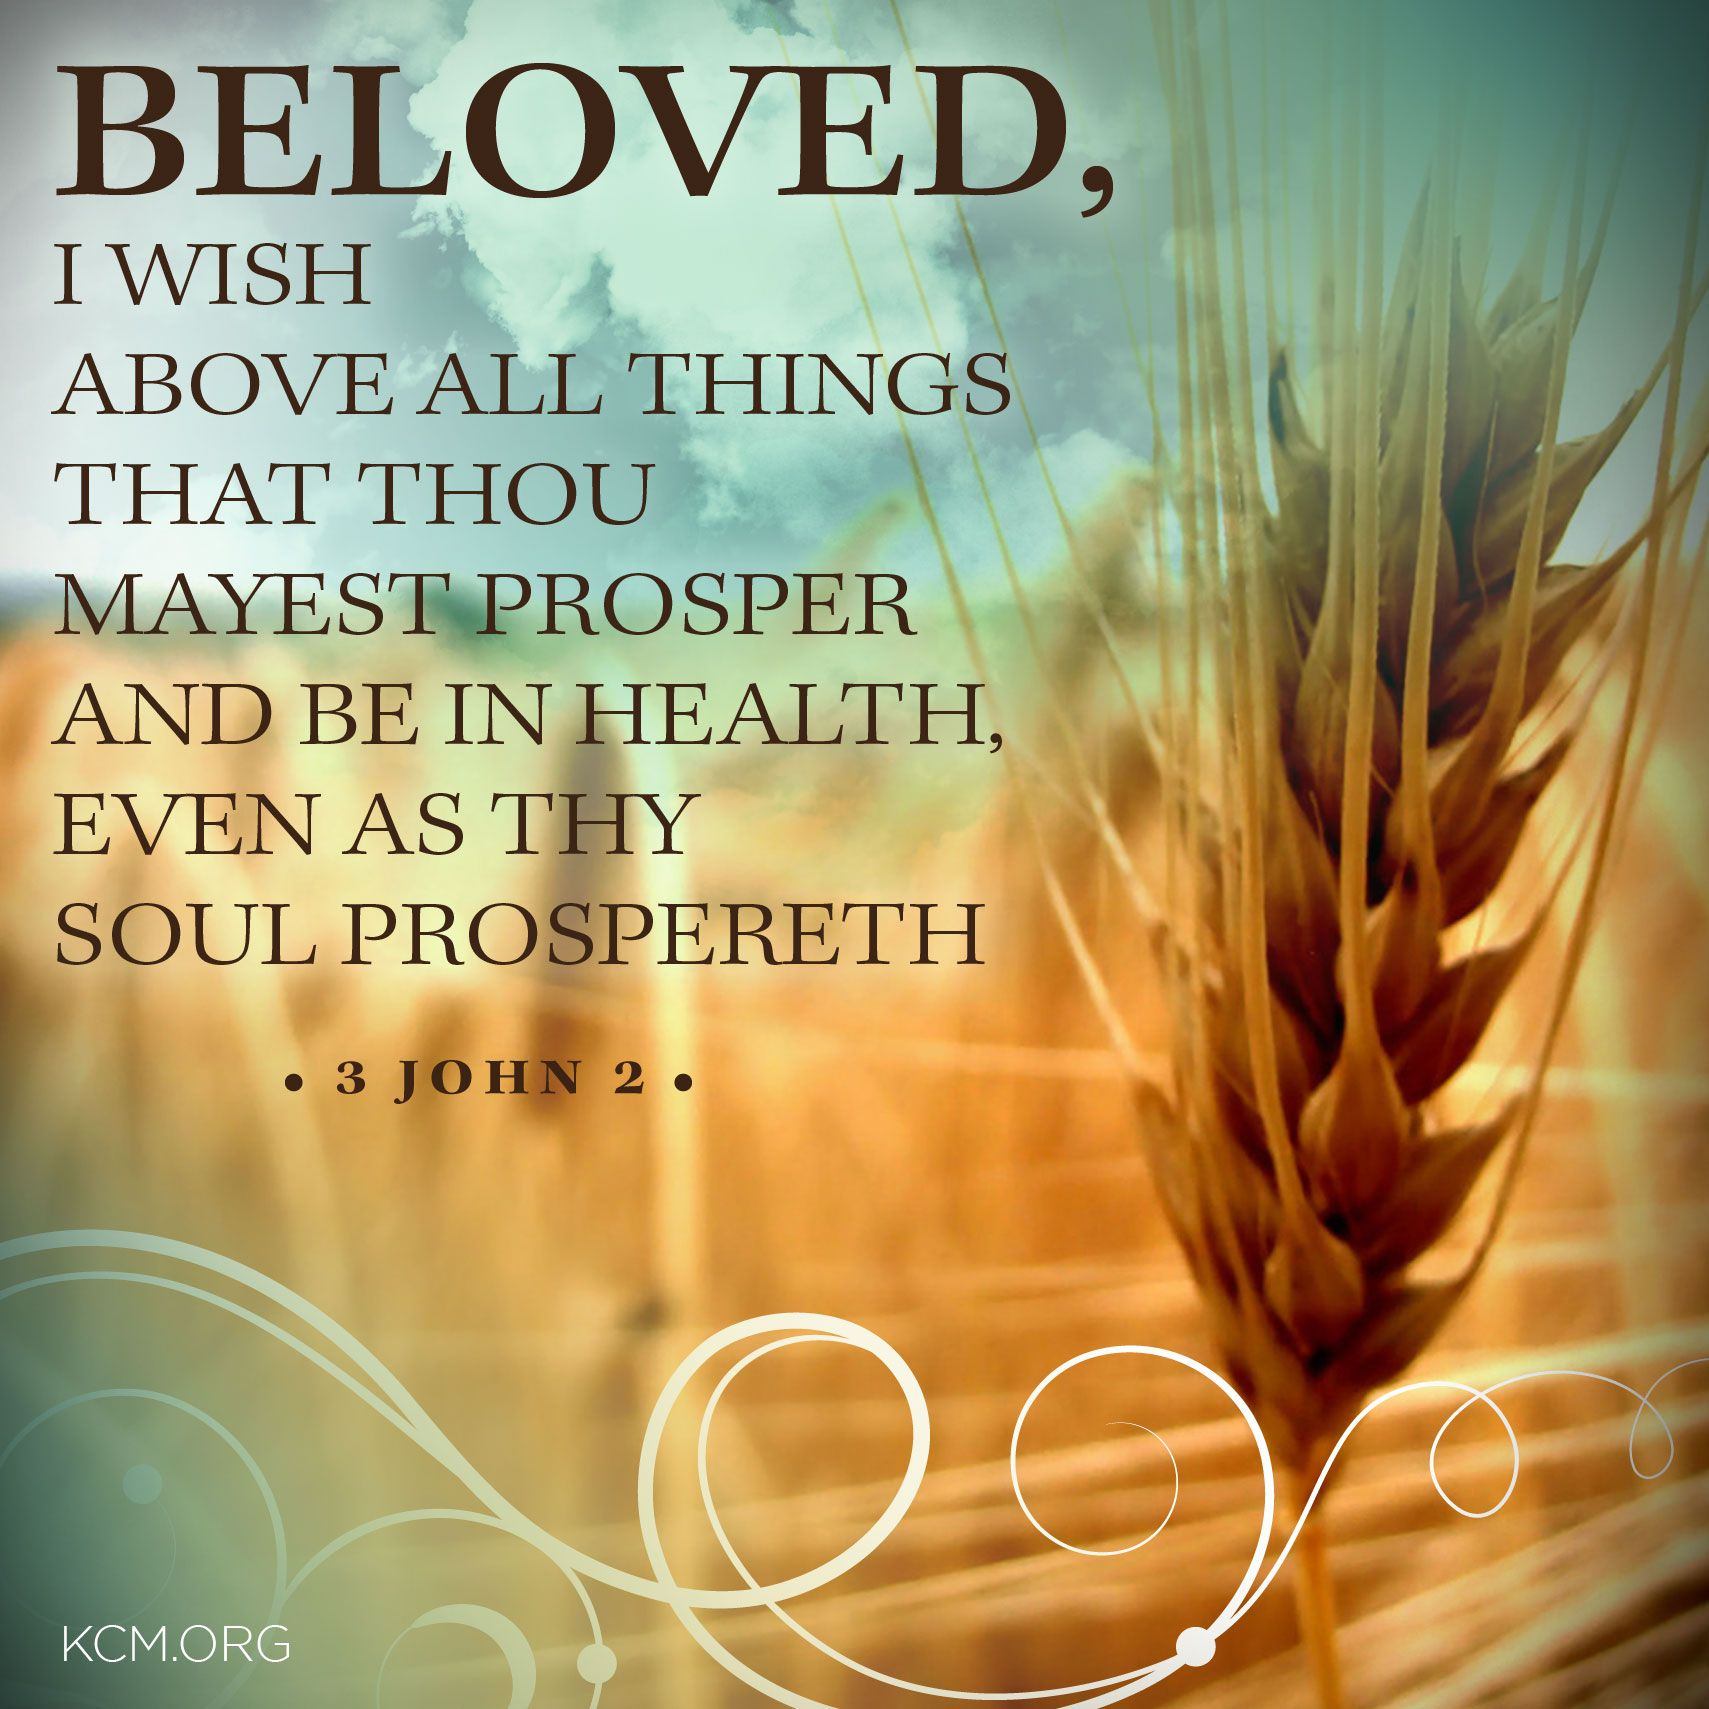 3 John King James Version KJV 2 Beloved I wish above all things that thou mayest prosper and be in health even as thy soul prospereth